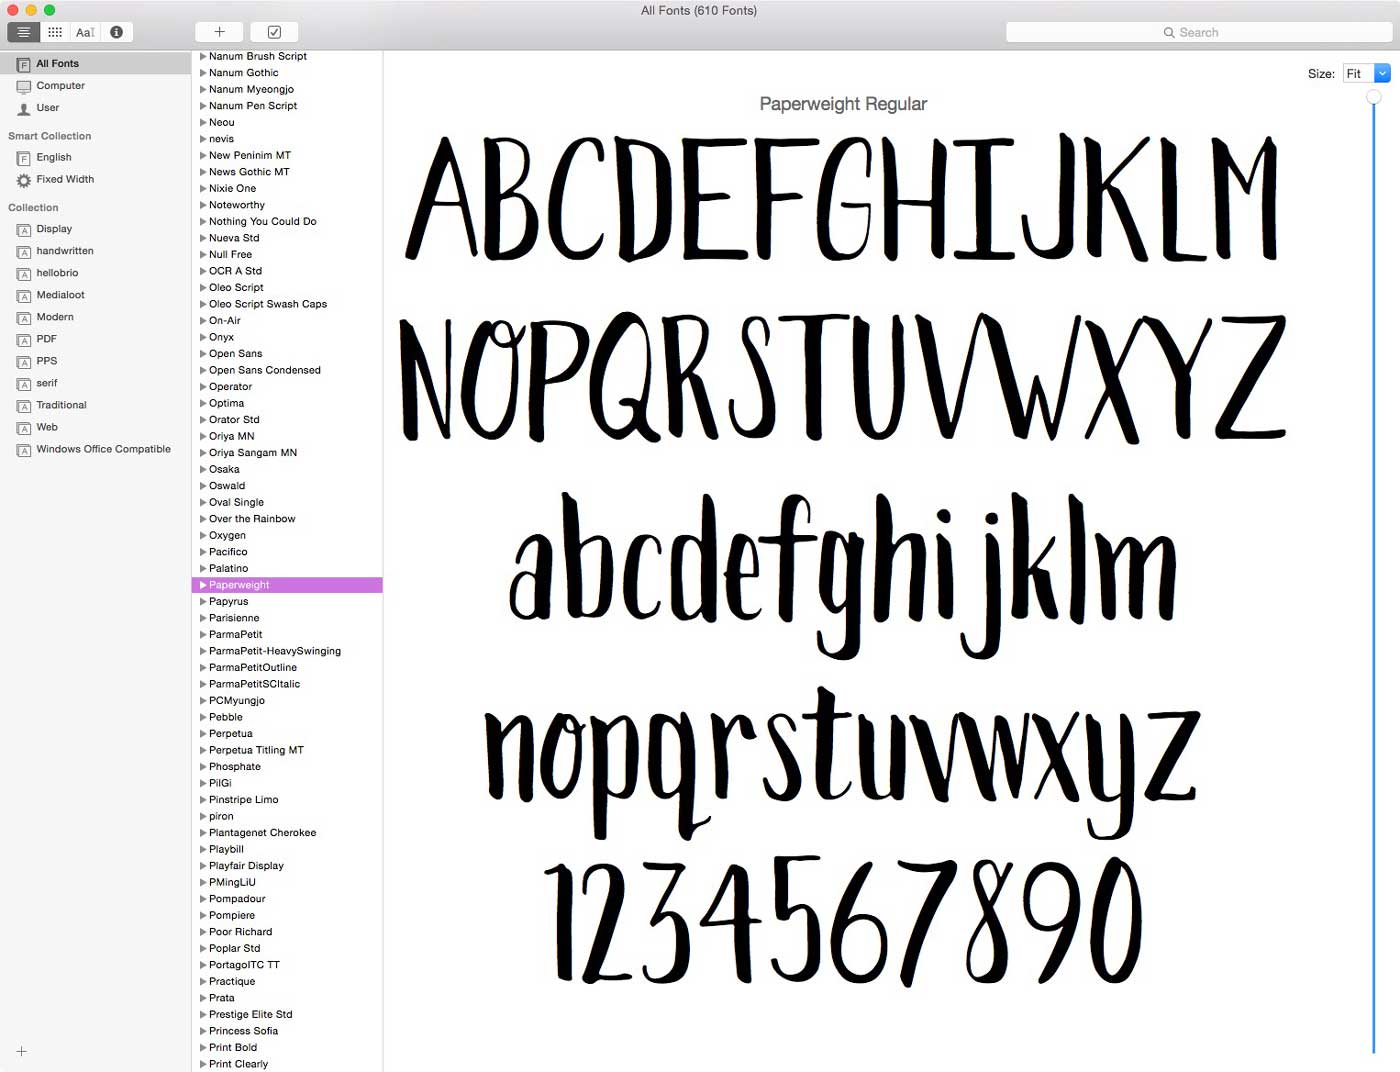 Congrats you've now made your own very own font